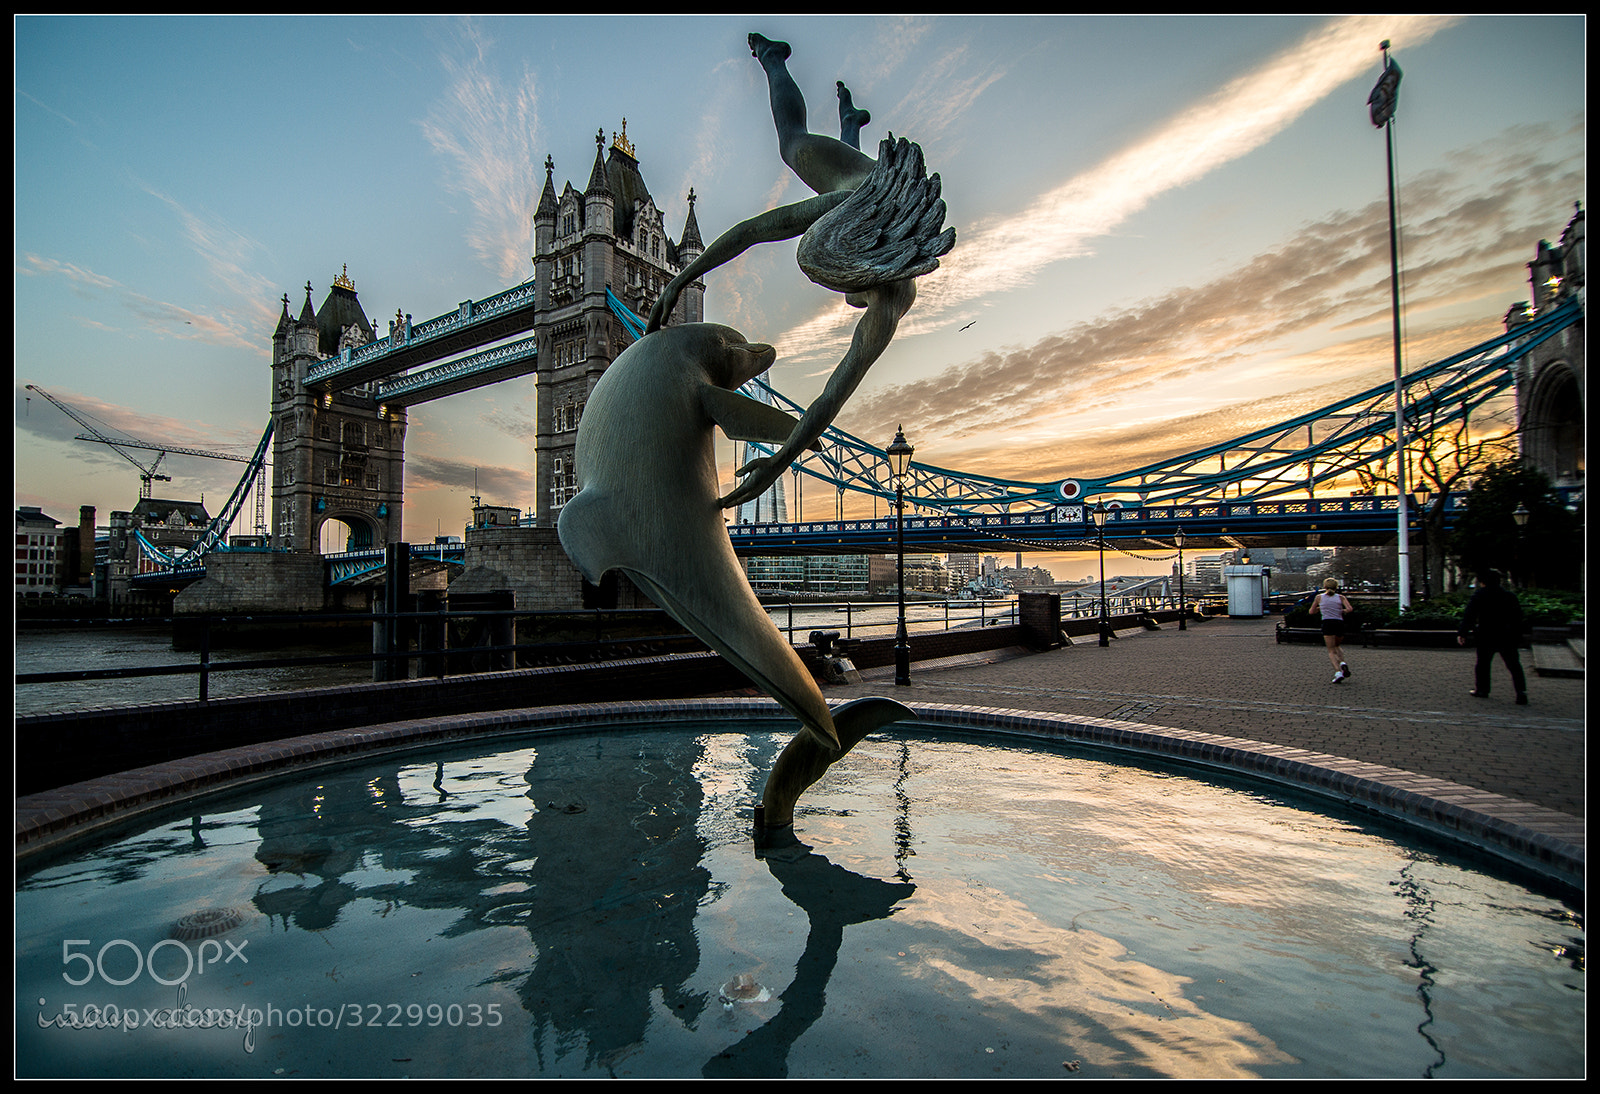 Photograph Tower Bridge During Sunset by Inan Aksoy on 500px